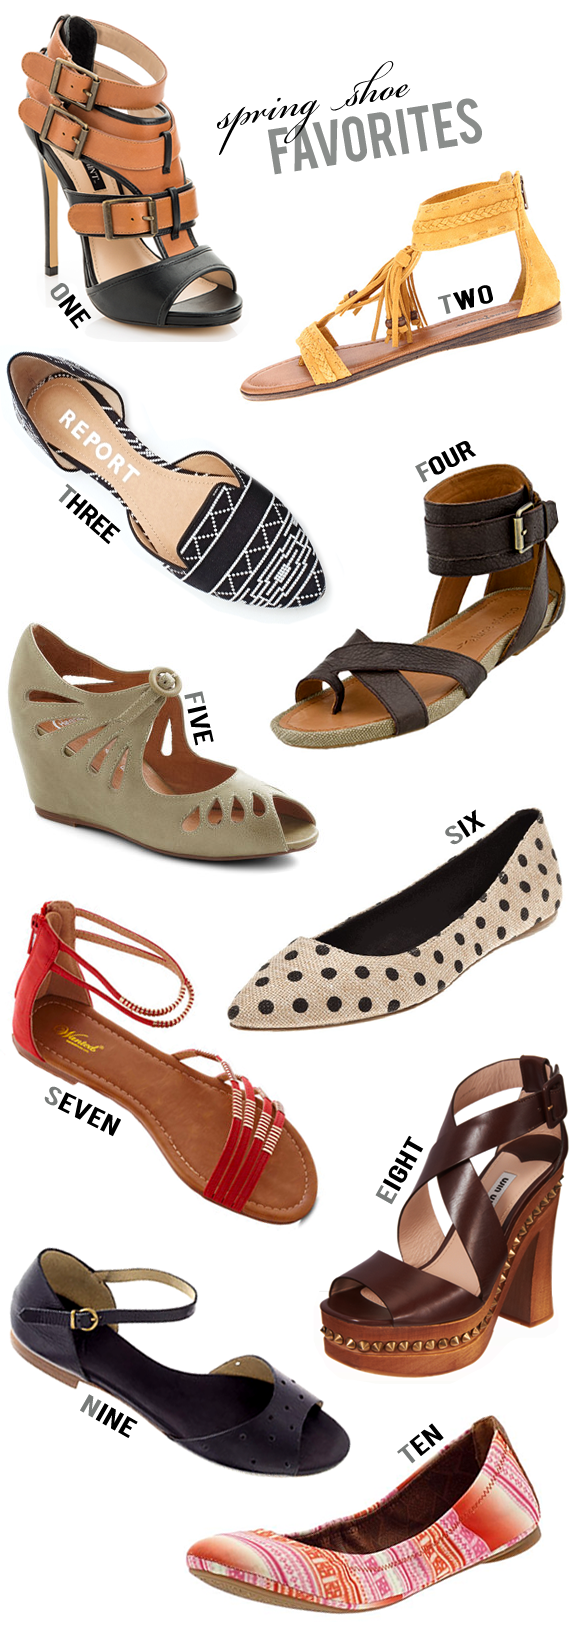 The 10 Best Shoes for Spring 2013 // Bubby and Bean